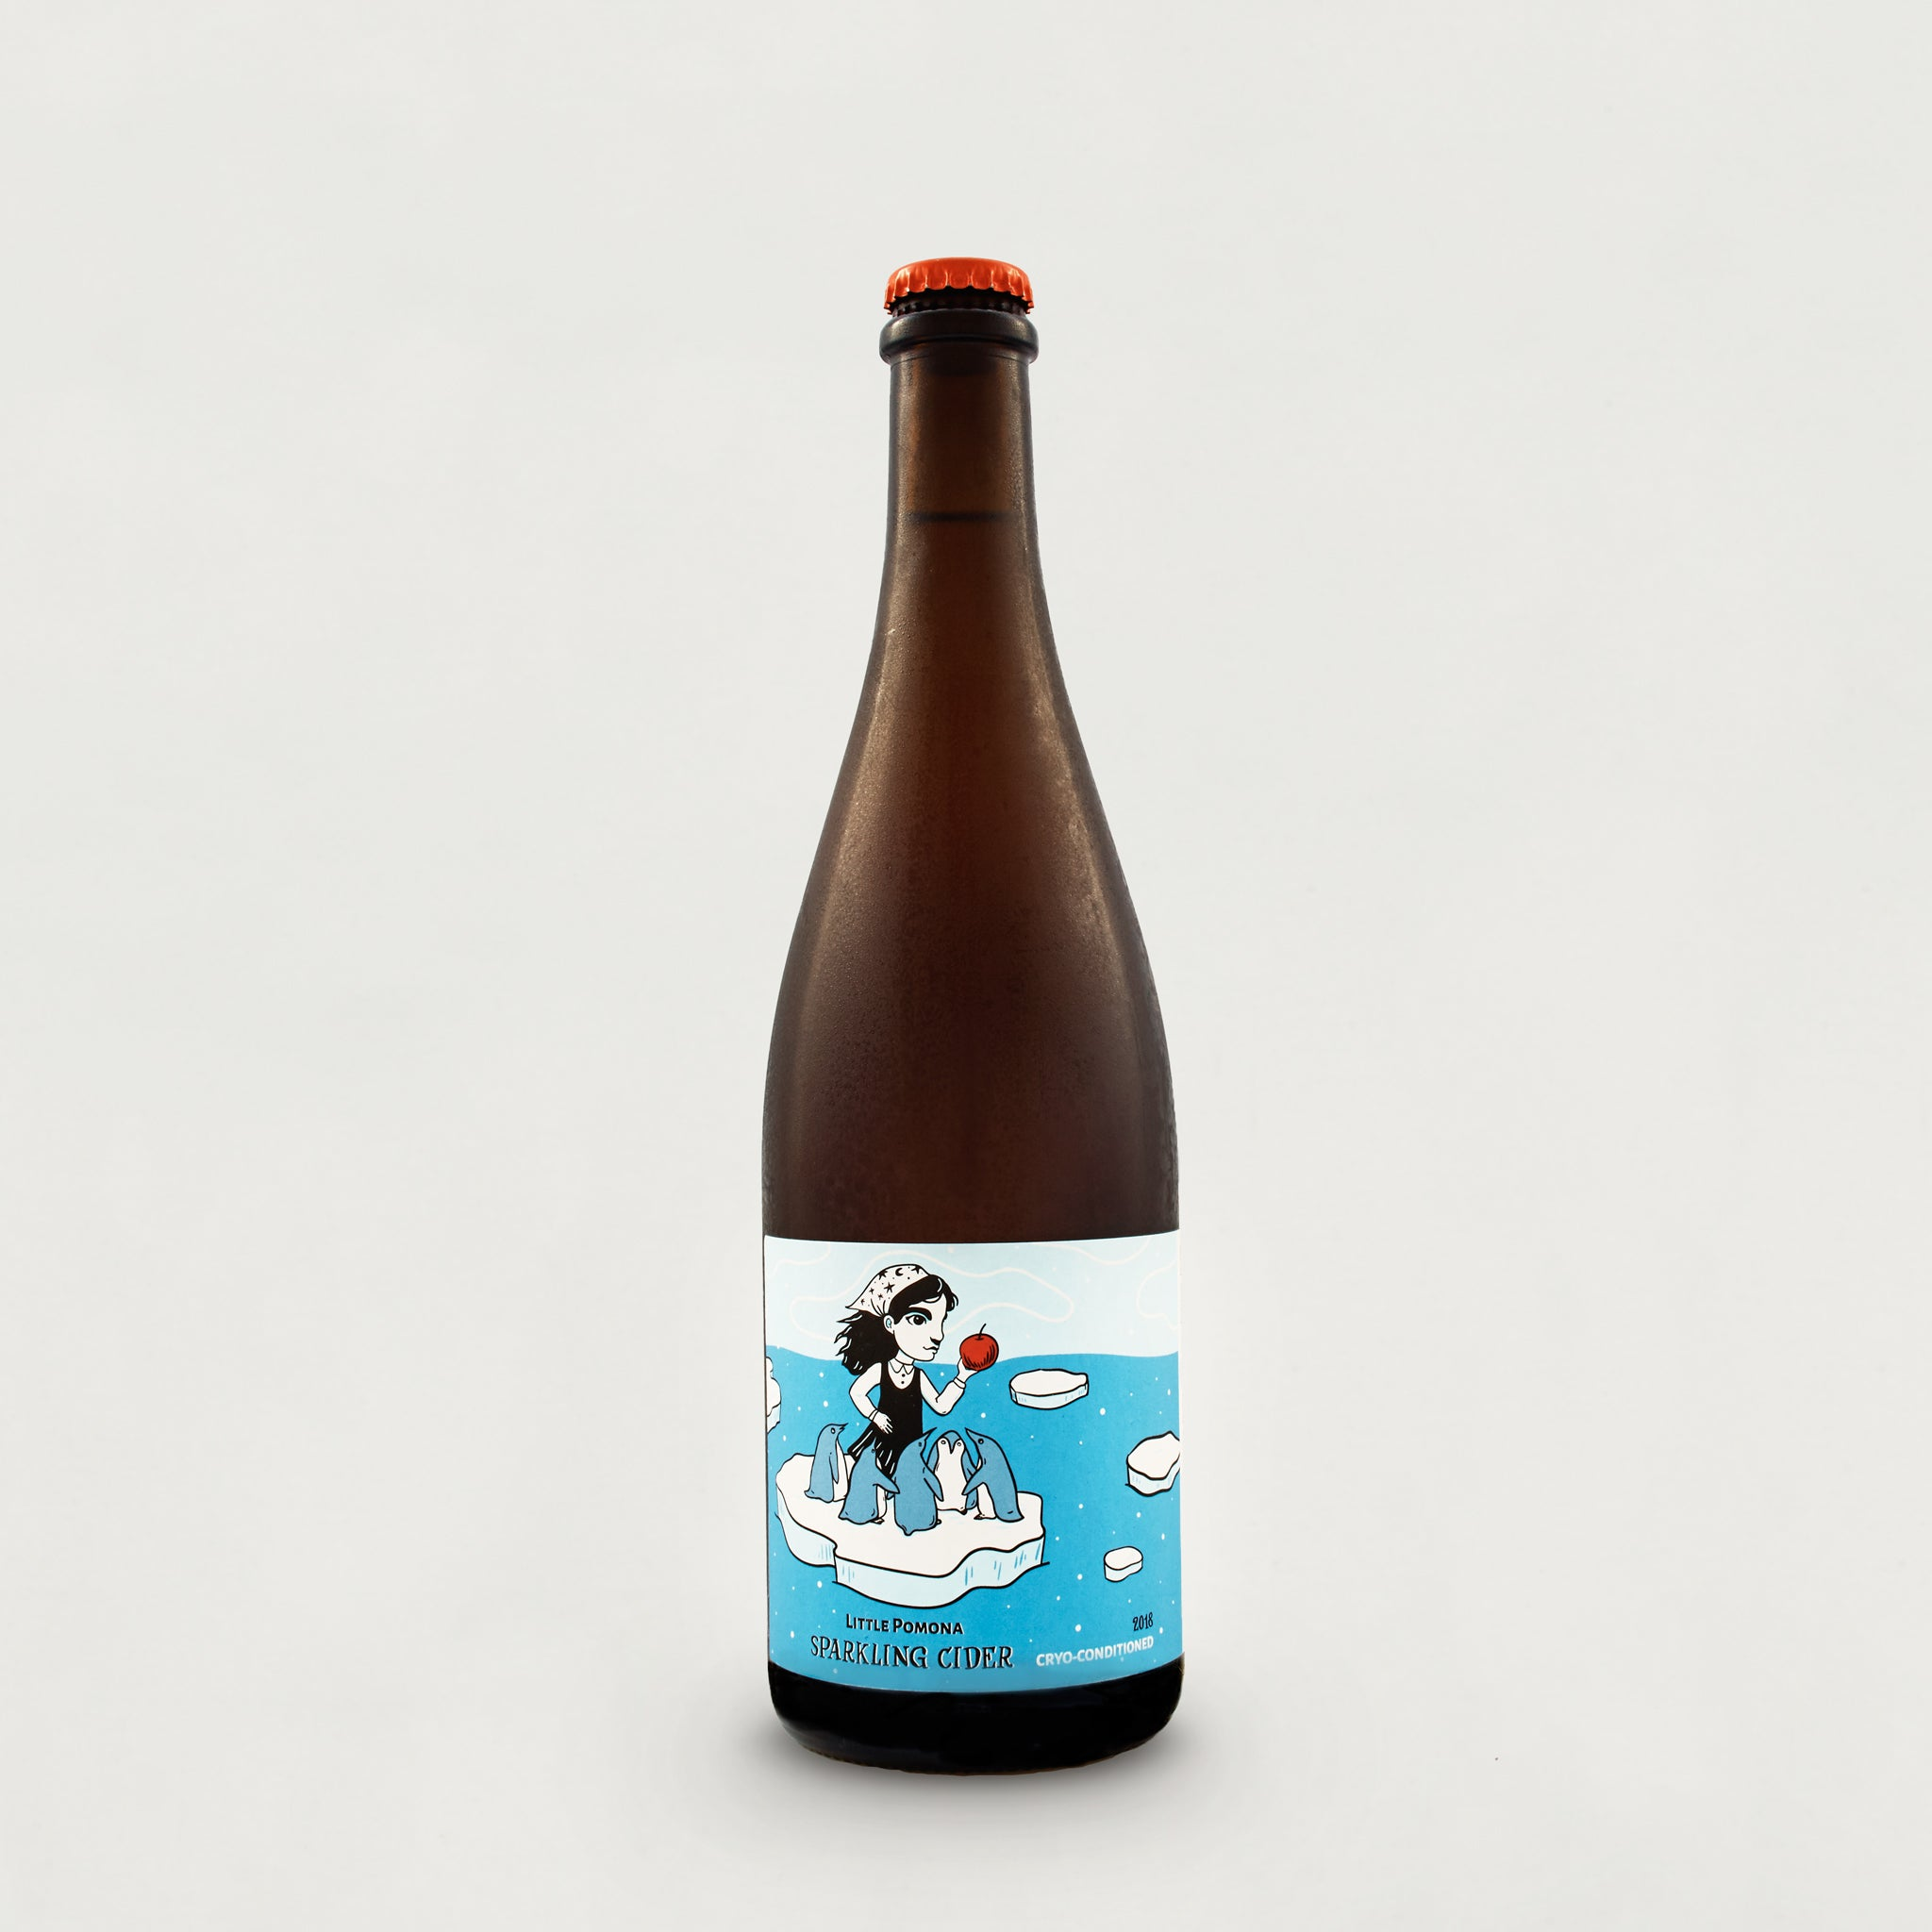 Cryo-Conditioned Cider 2018